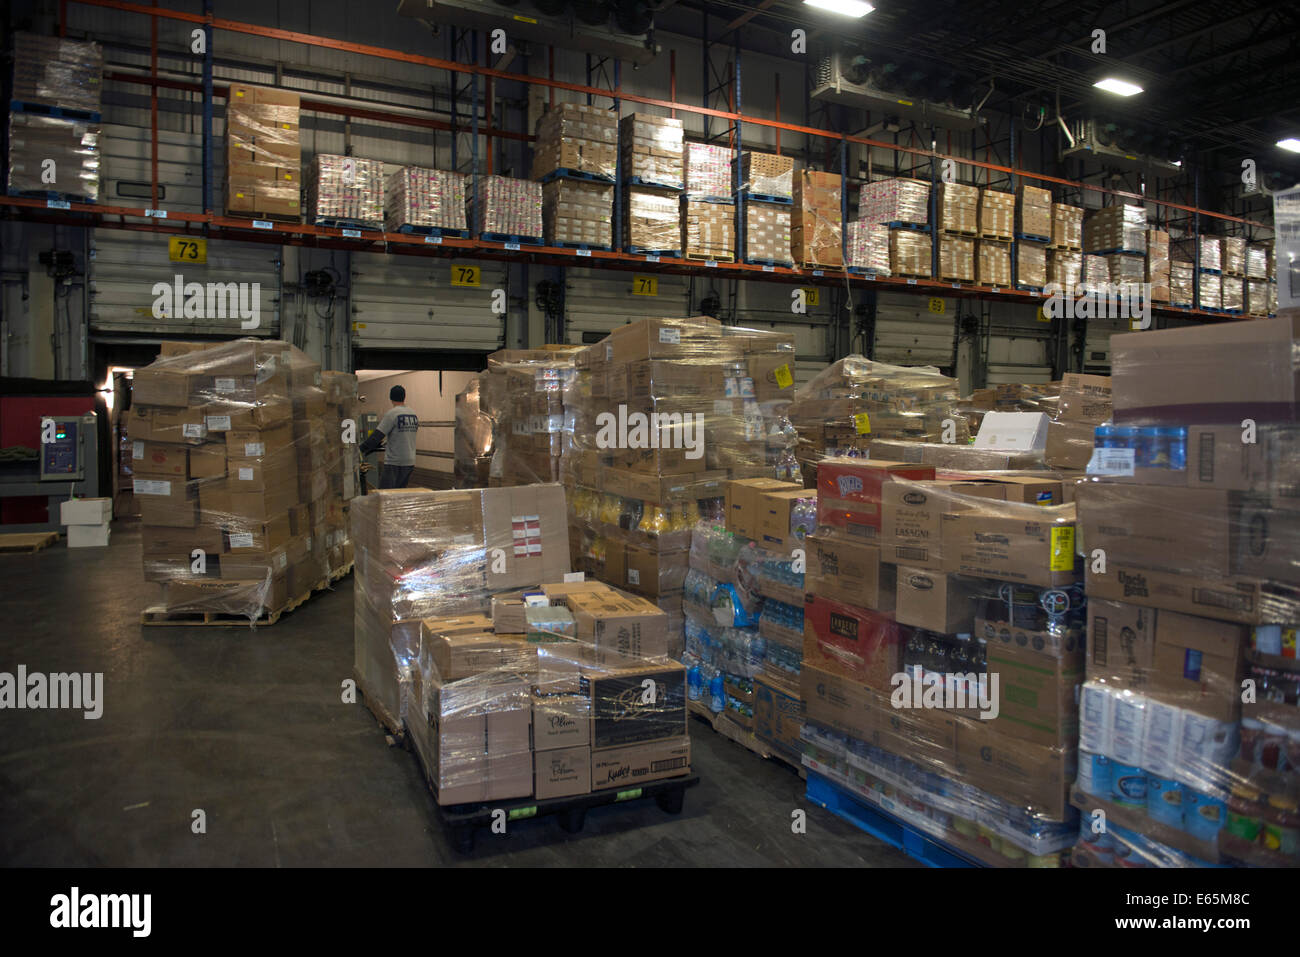 Refrigerated Area In Giant Warehouse Of Food Distributor